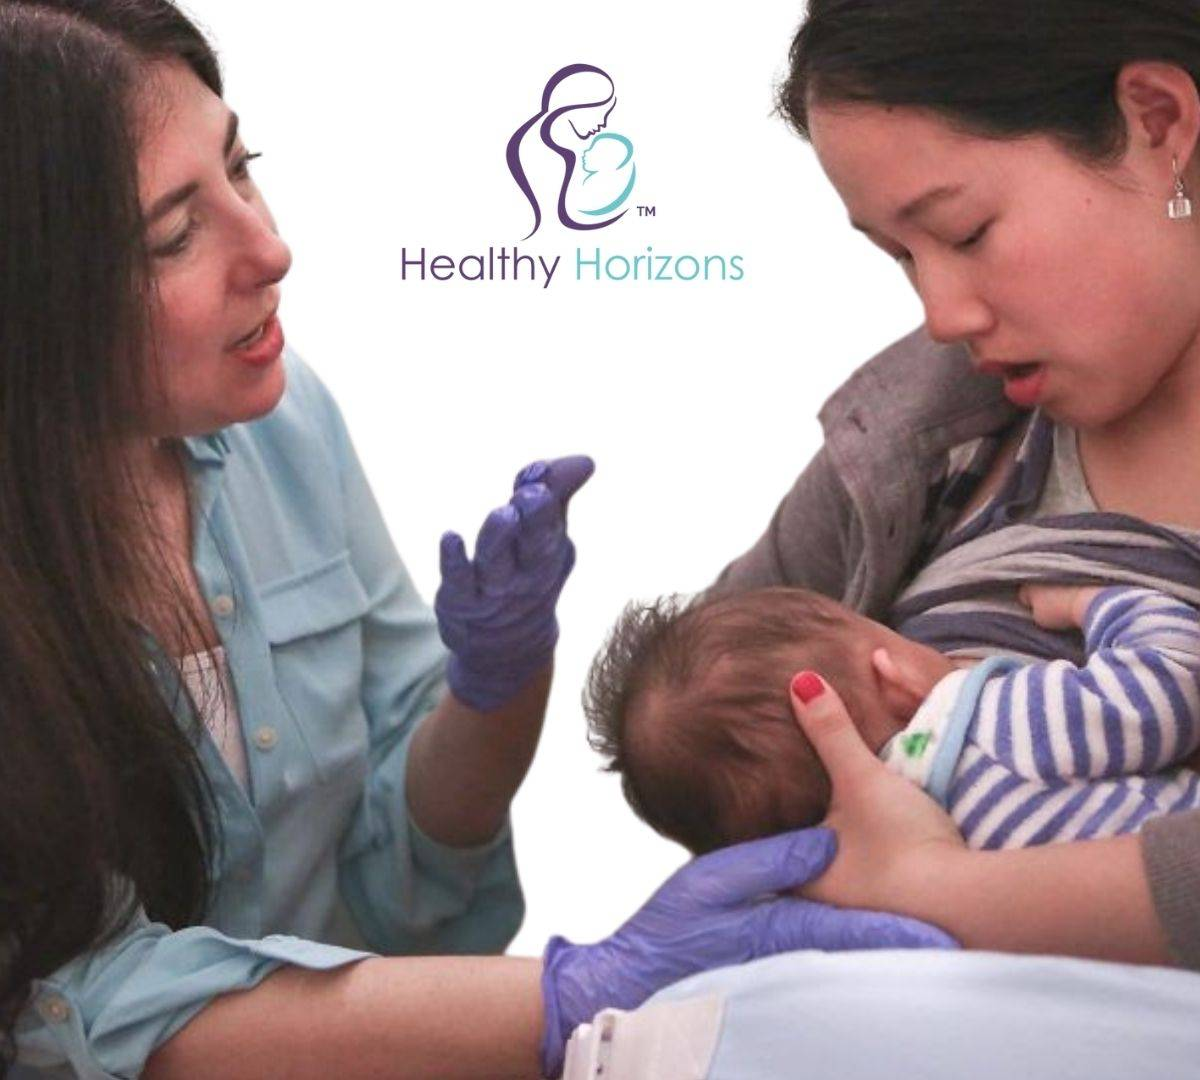 August is National Breastfeeding Month